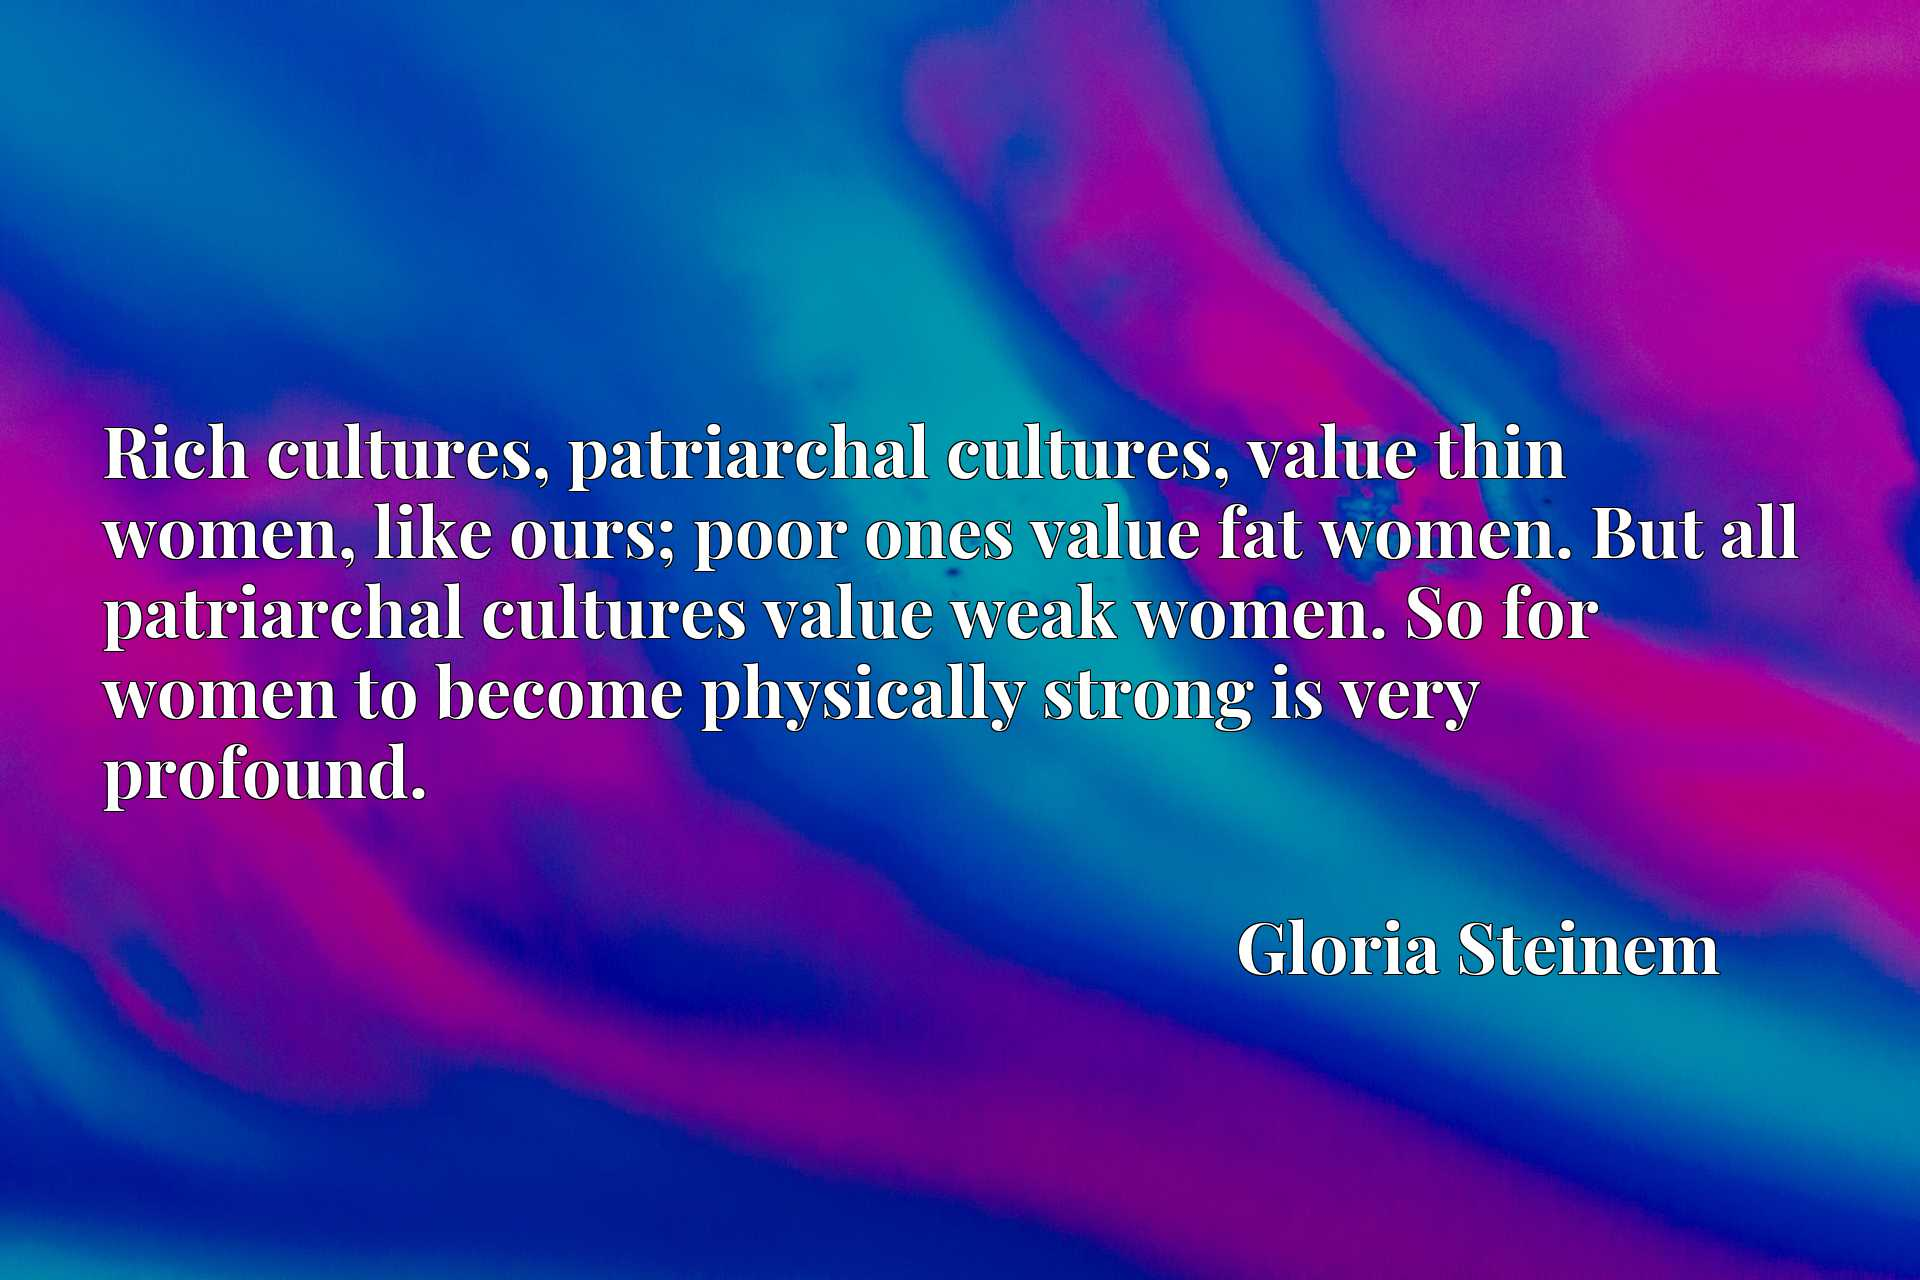 Rich cultures, patriarchal cultures, value thin women, like ours; poor ones value fat women. But all patriarchal cultures value weak women. So for women to become physically strong is very profound.